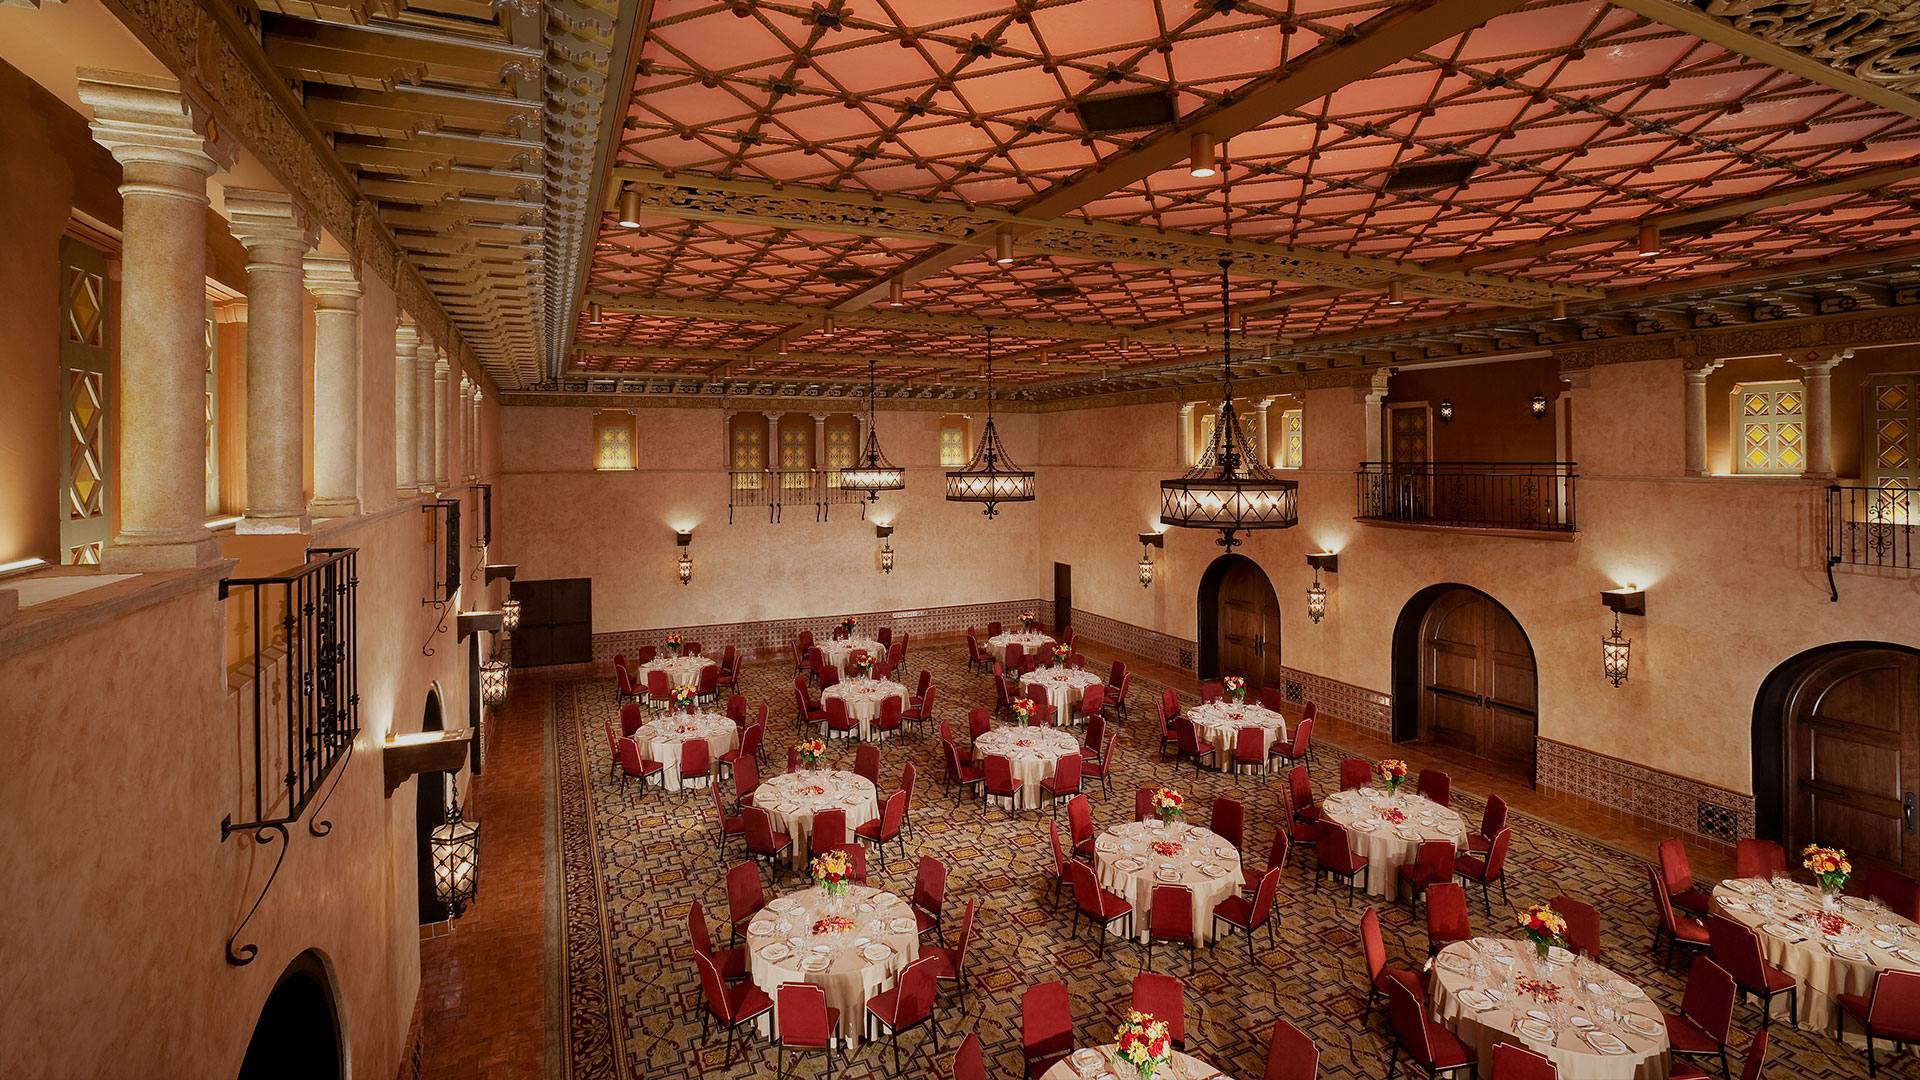 Blossom Ballroom at the Hollywood Roosevelt Hotel